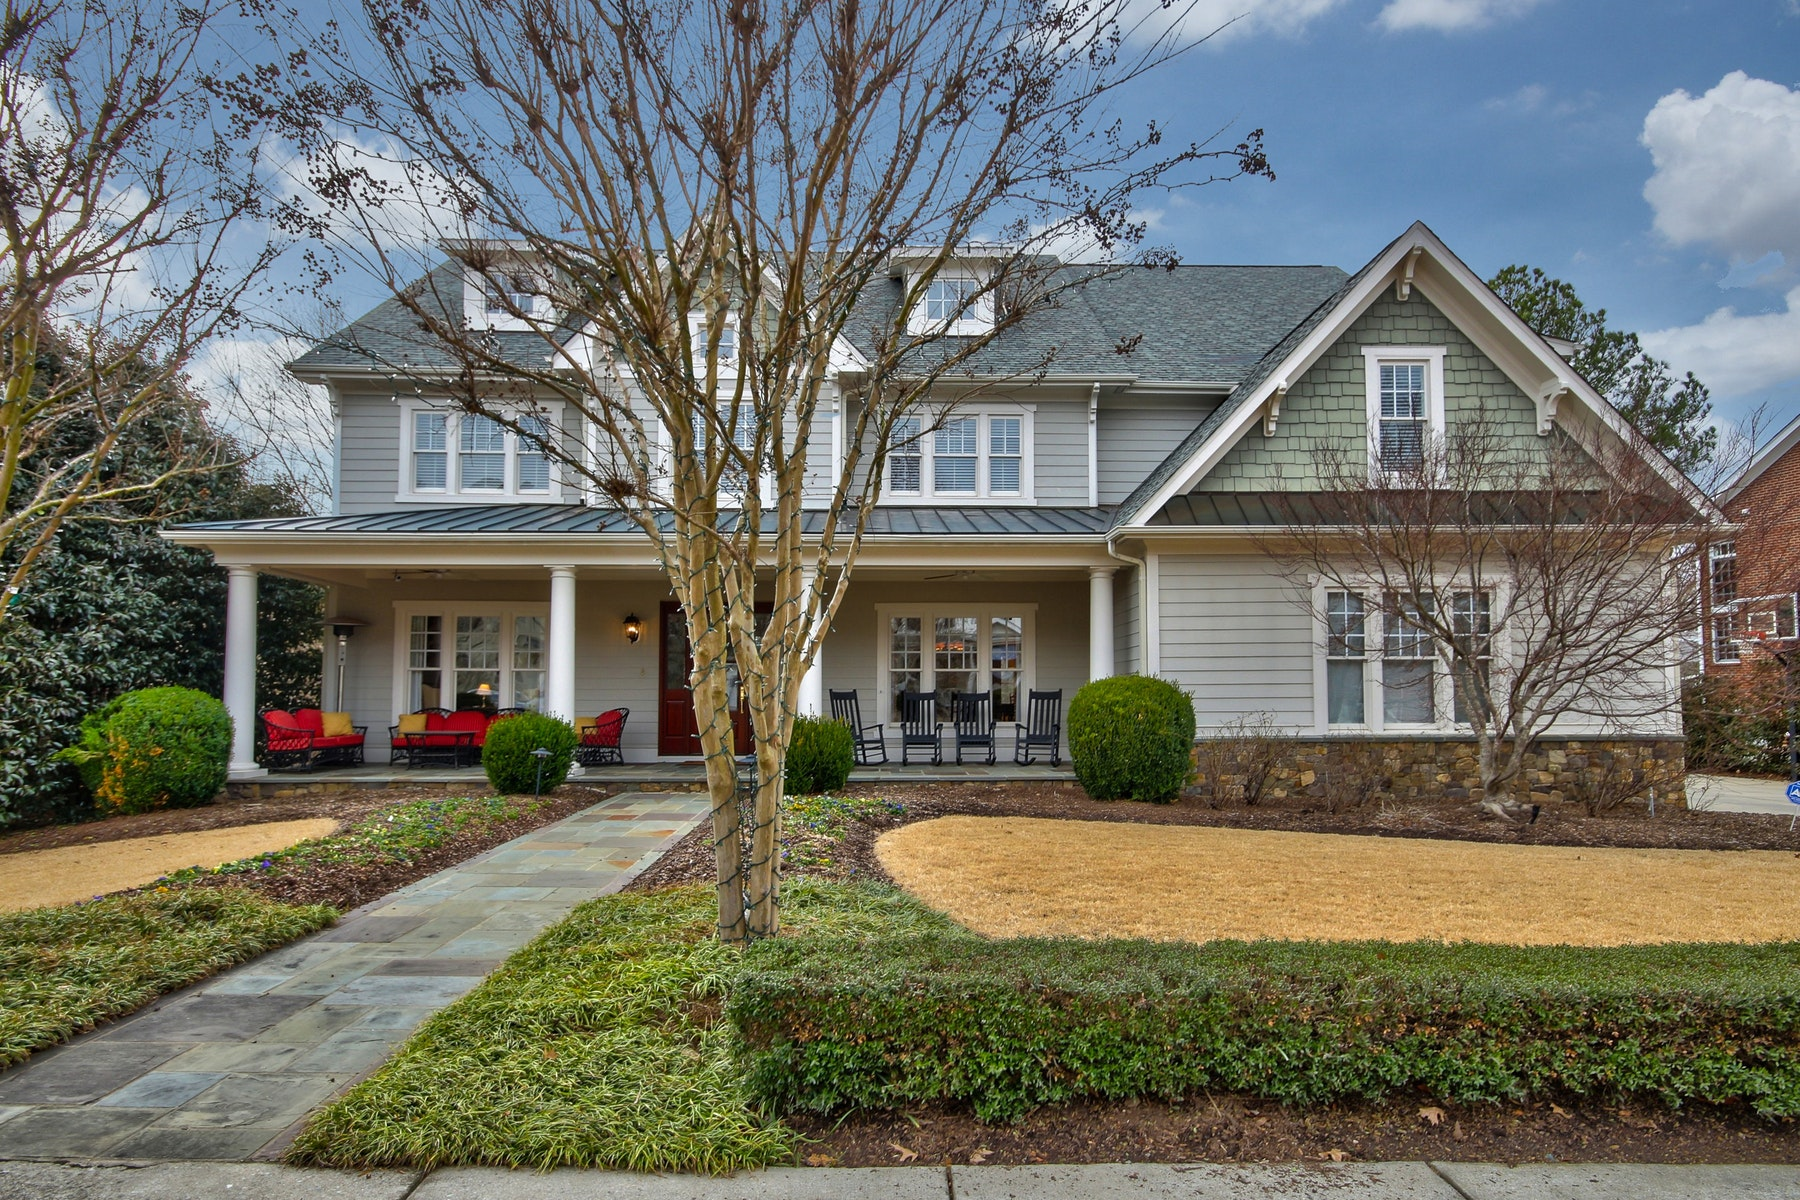 Single Family Home for Sale at Golf Course Home in Meadowmont 1148 Pinehurst Drive Chapel Hill, North Carolina 27517 United States